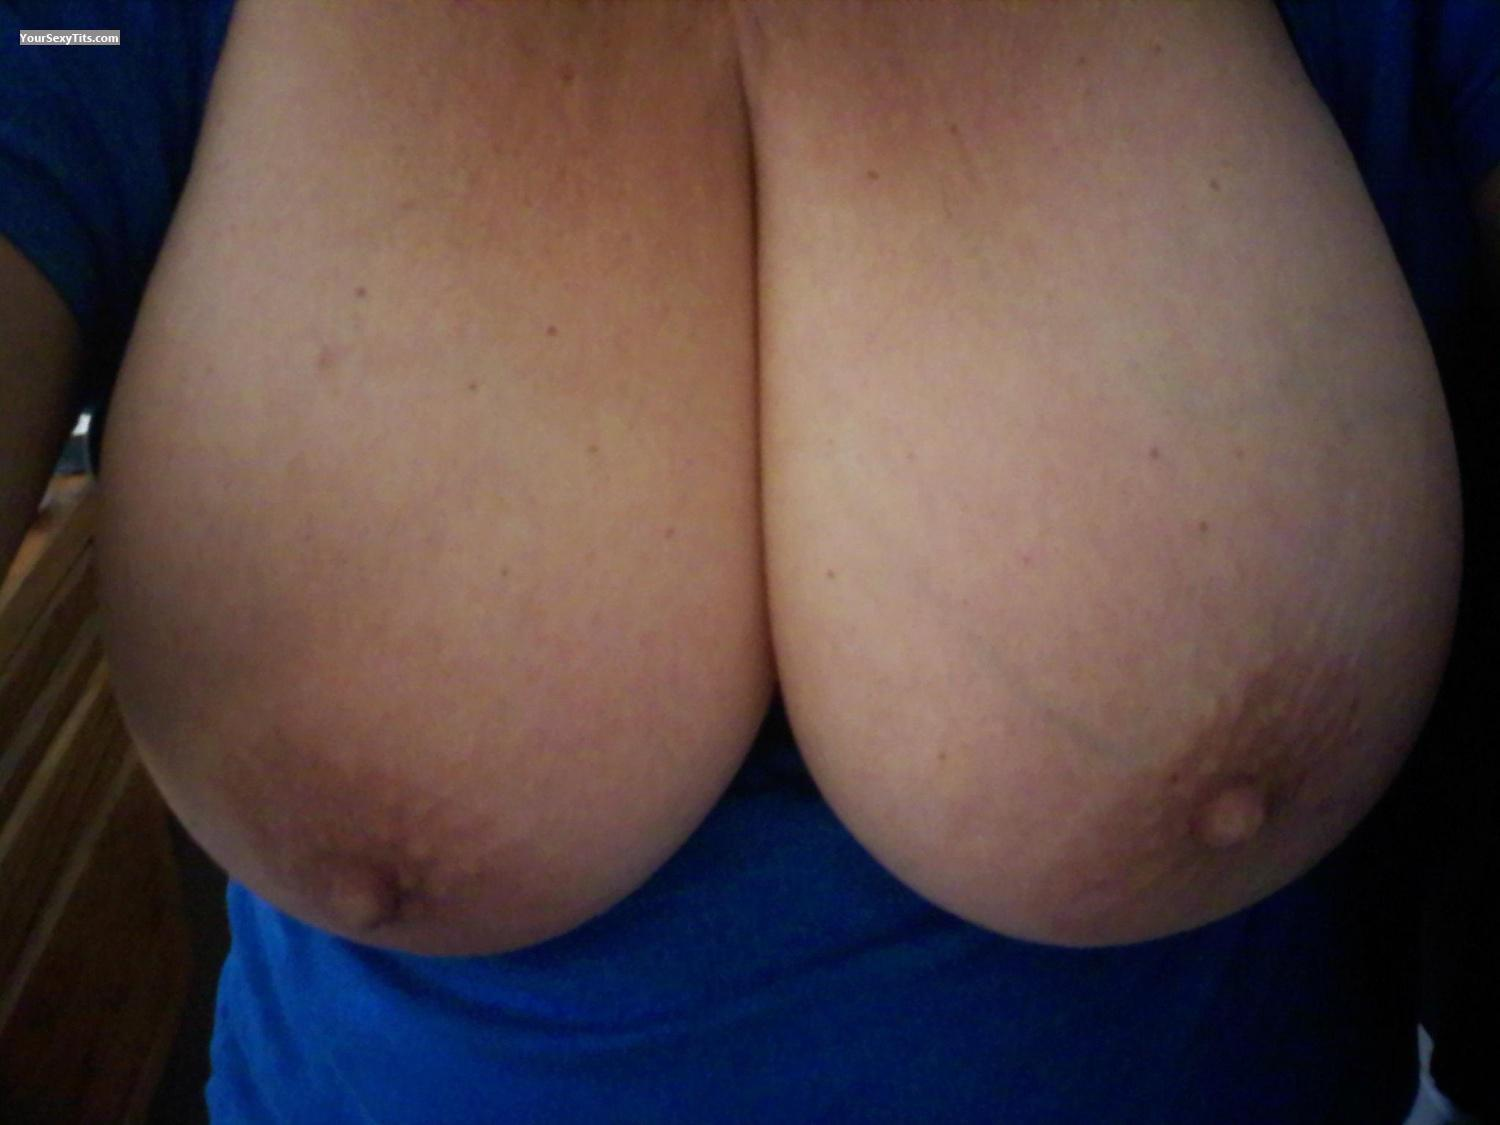 Tit Flash: Very Big Tits By IPhone - Ms. Night from United States